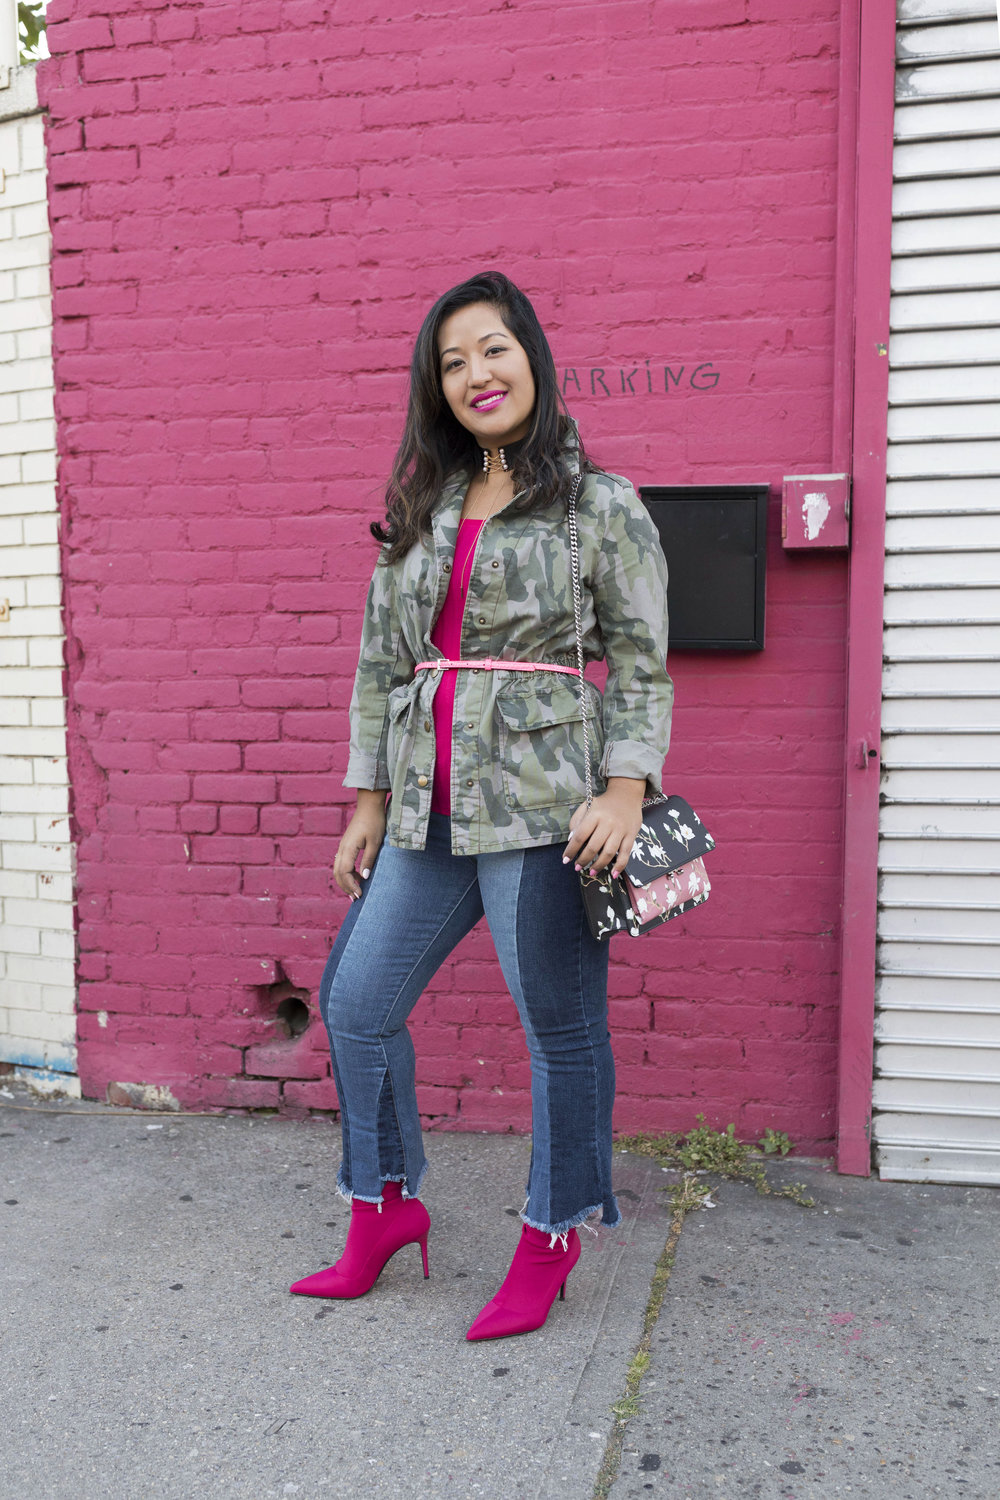 Krity S x Pink Sock Boots x Casual Look 4.jpg